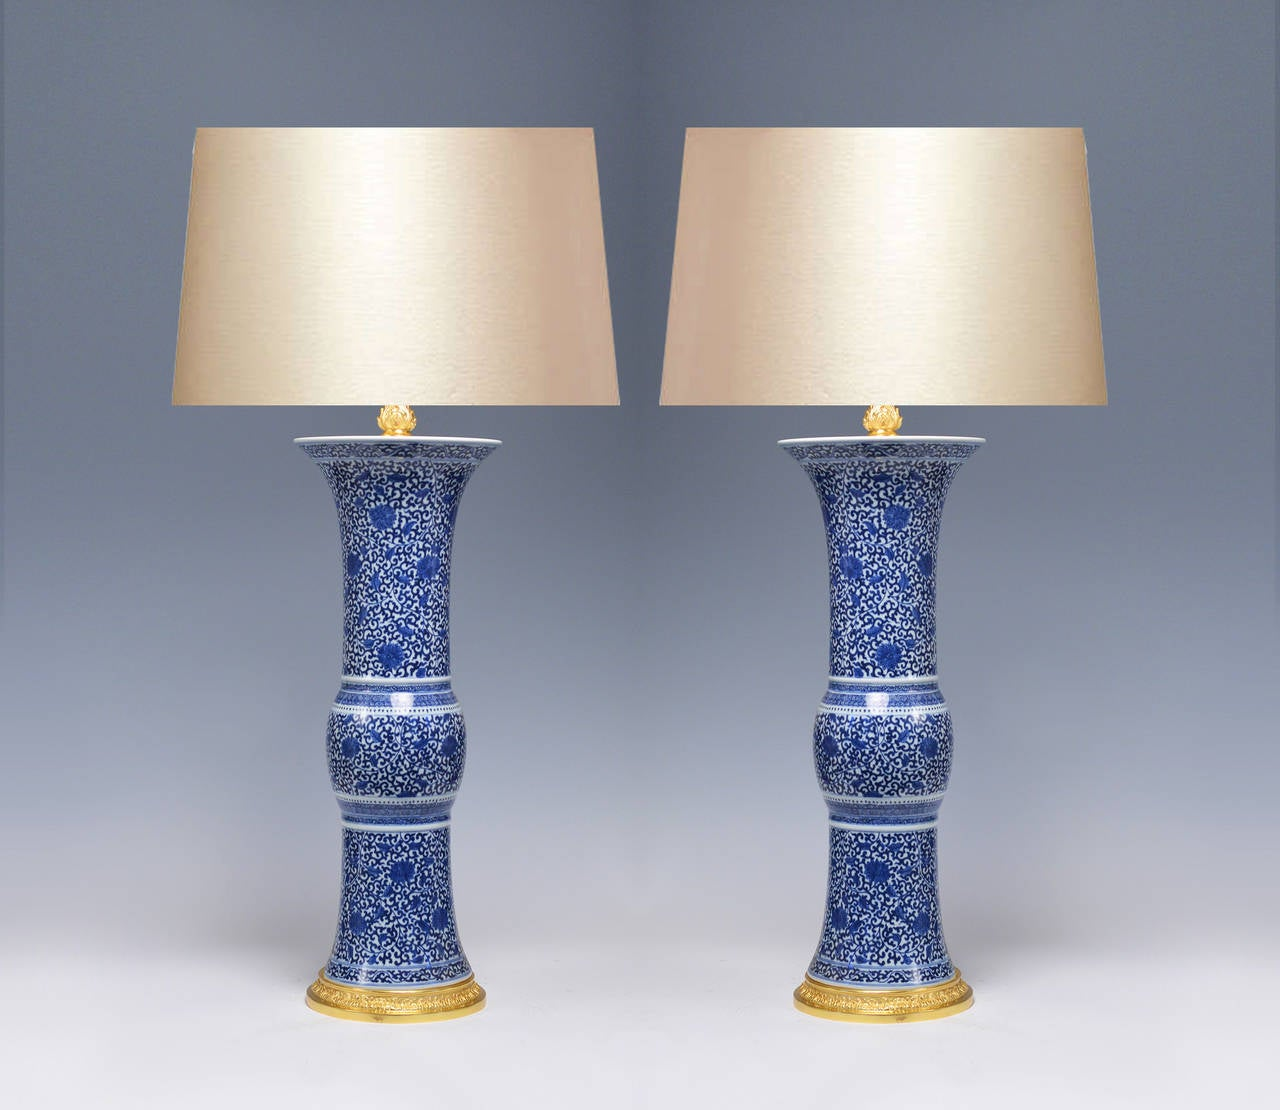 Pair of fine painted beaker form blue and white porcelain lamps with floral scroll decoration, 21 1/4